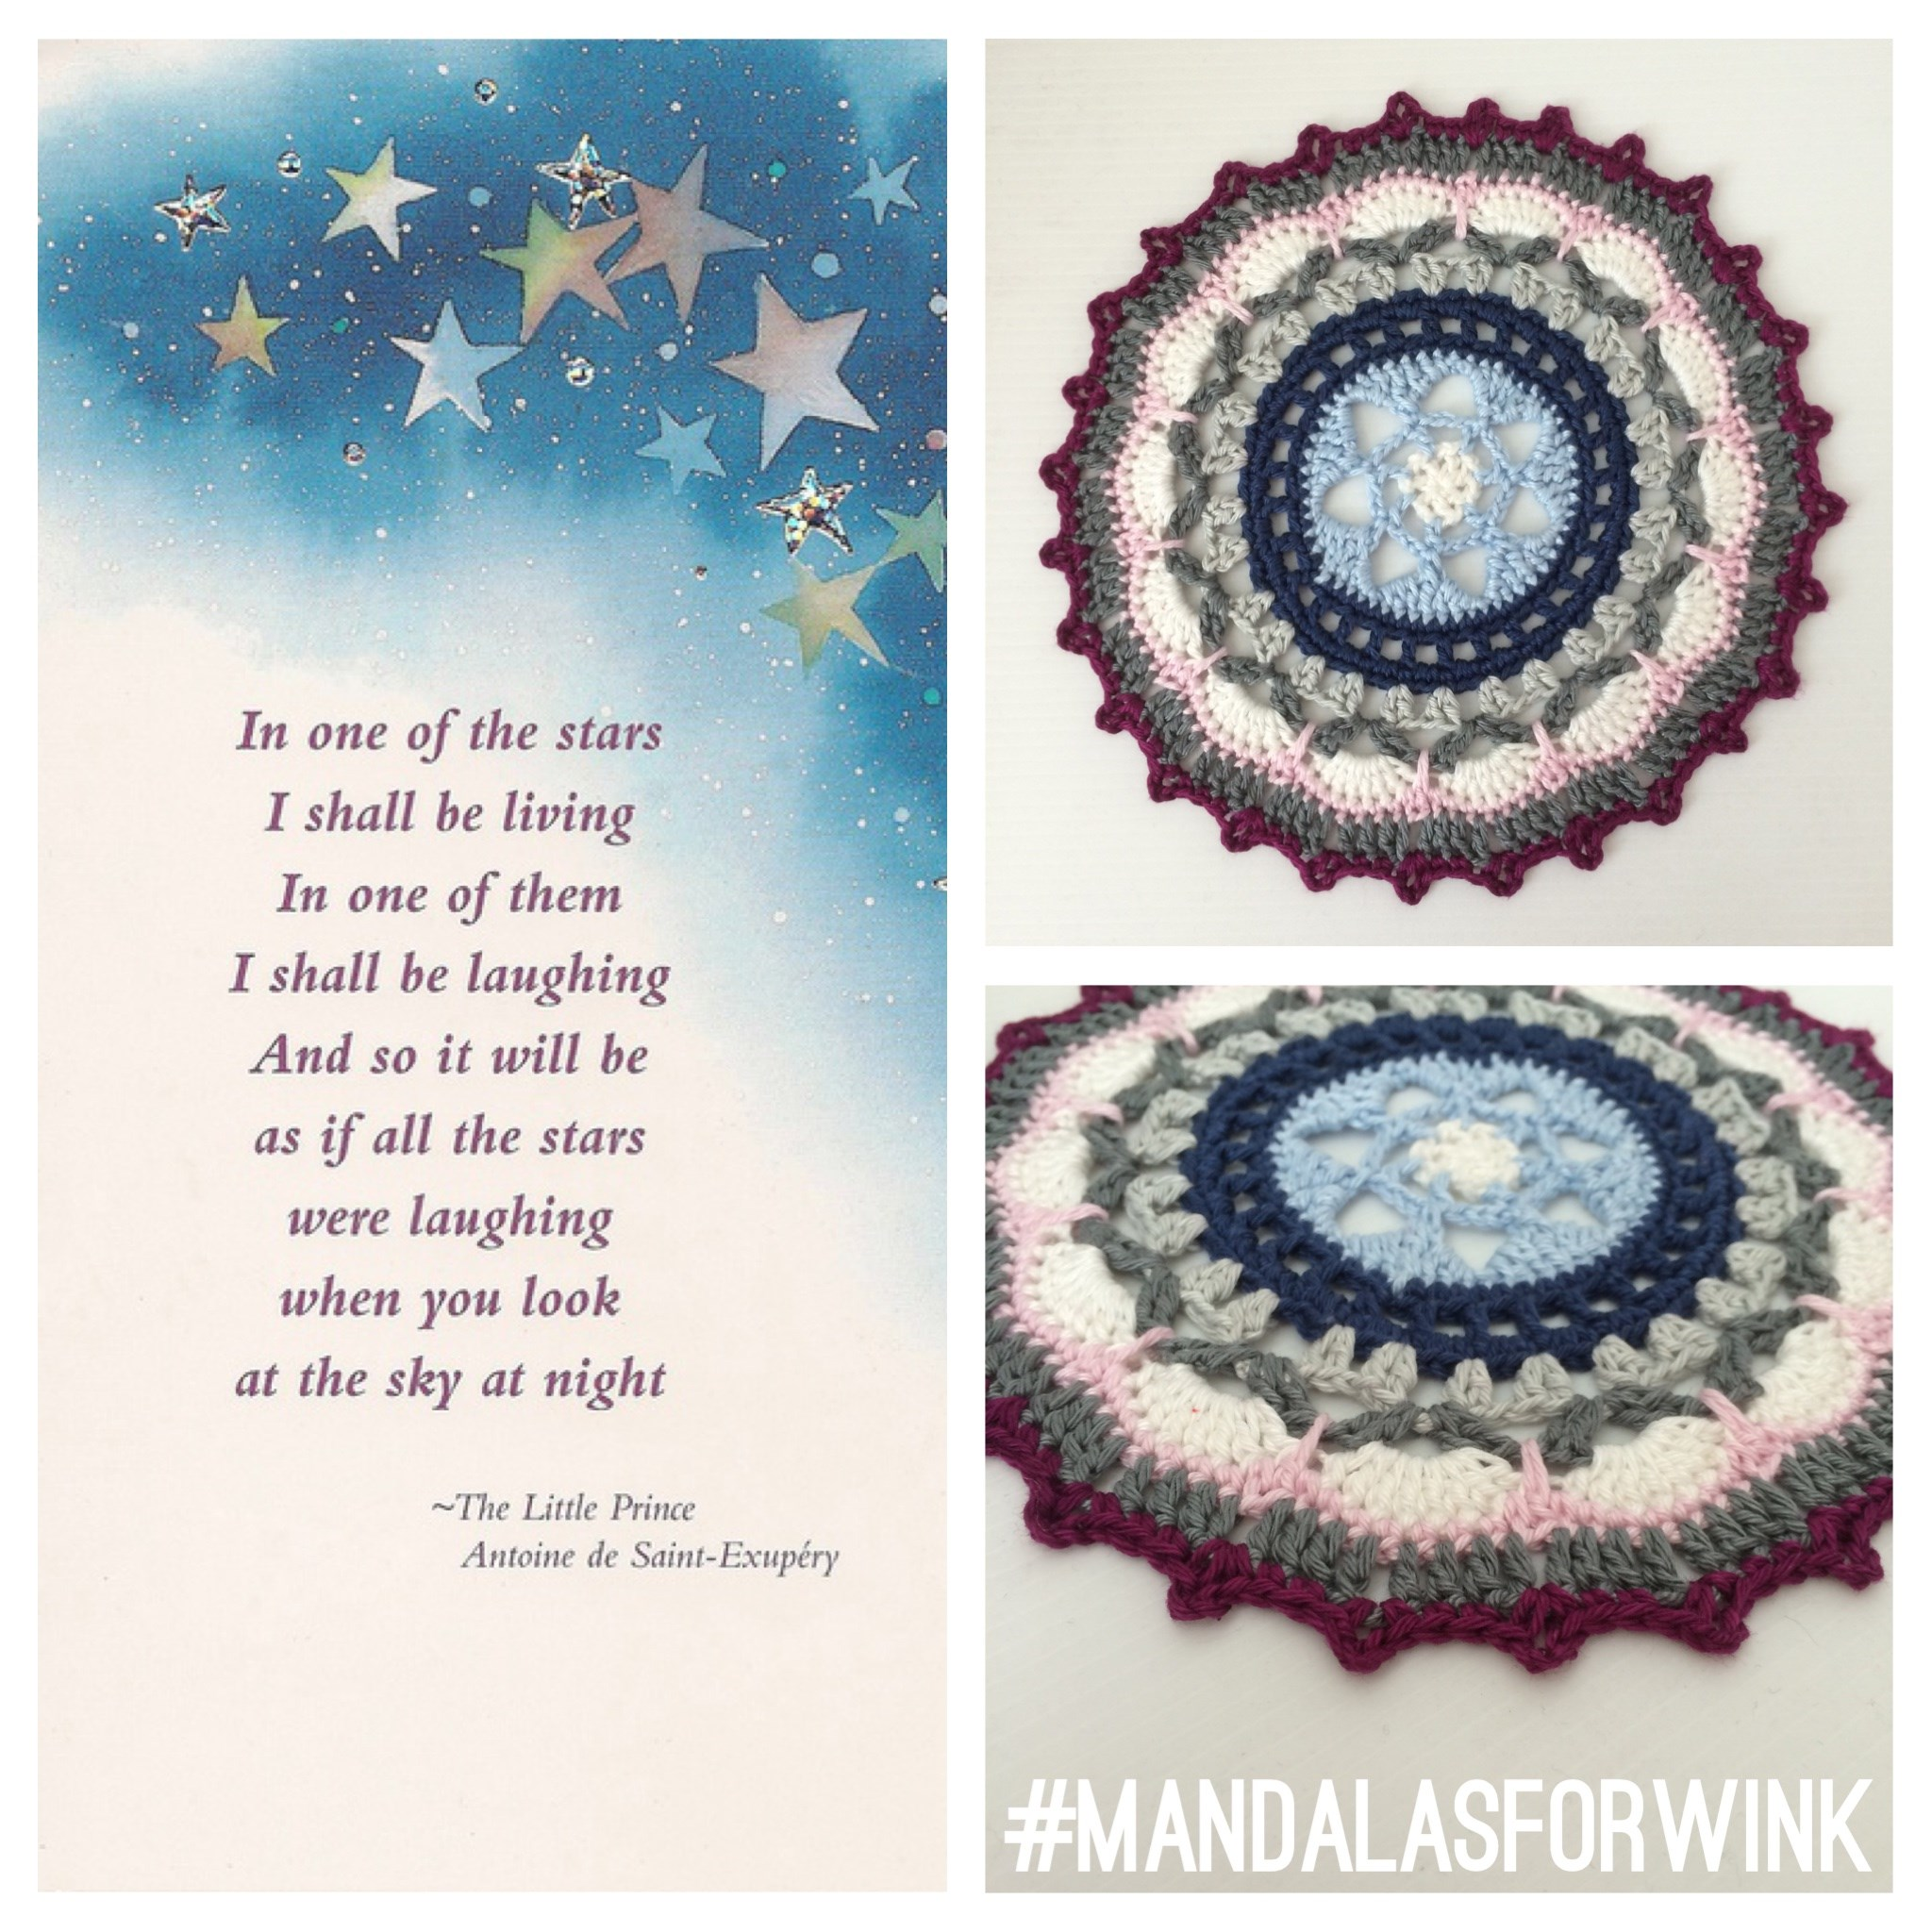 A crocheted star that t-WINK-les forever in the middle of one of her mandalas. RIP Marinke